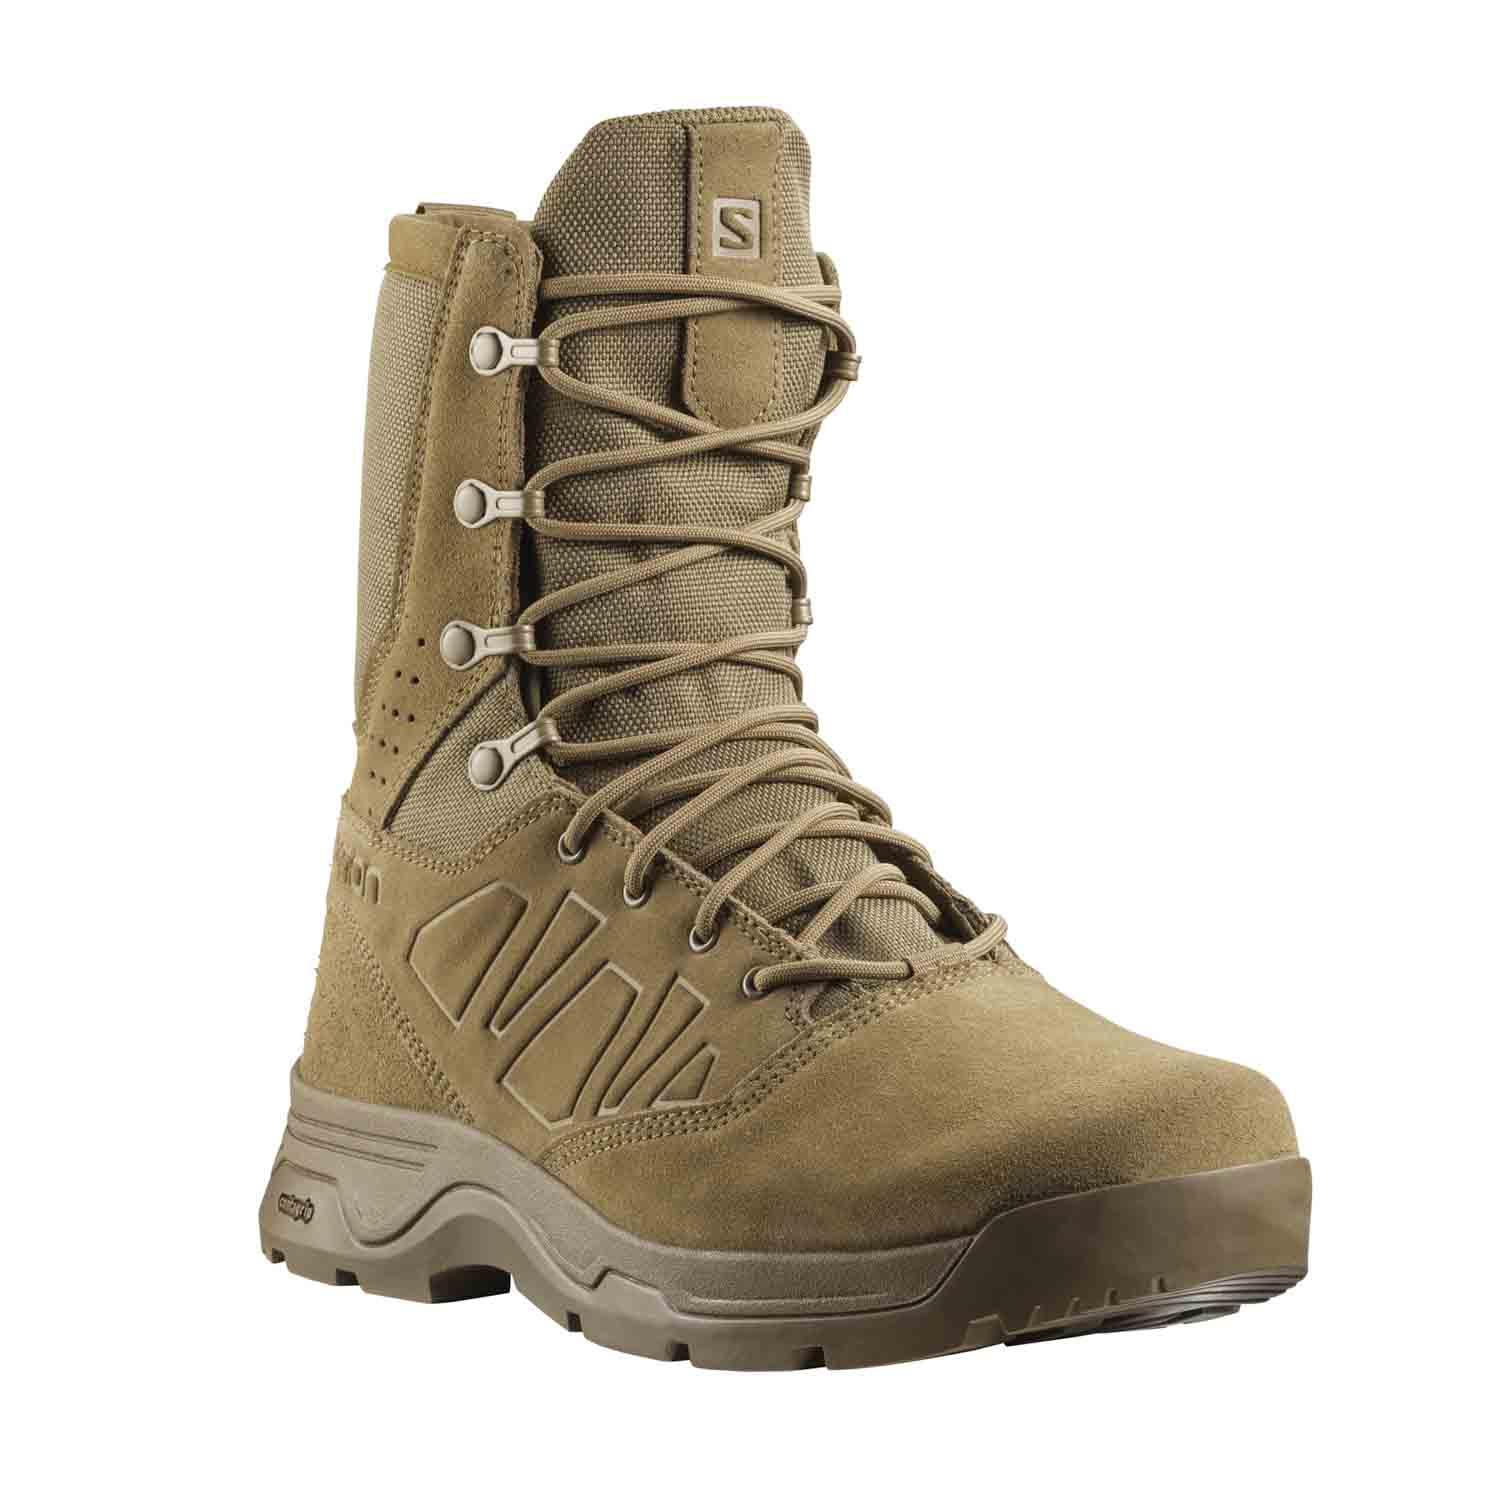 "Salomon Guardian CSWP Waterproof 8"" Duty Boot"